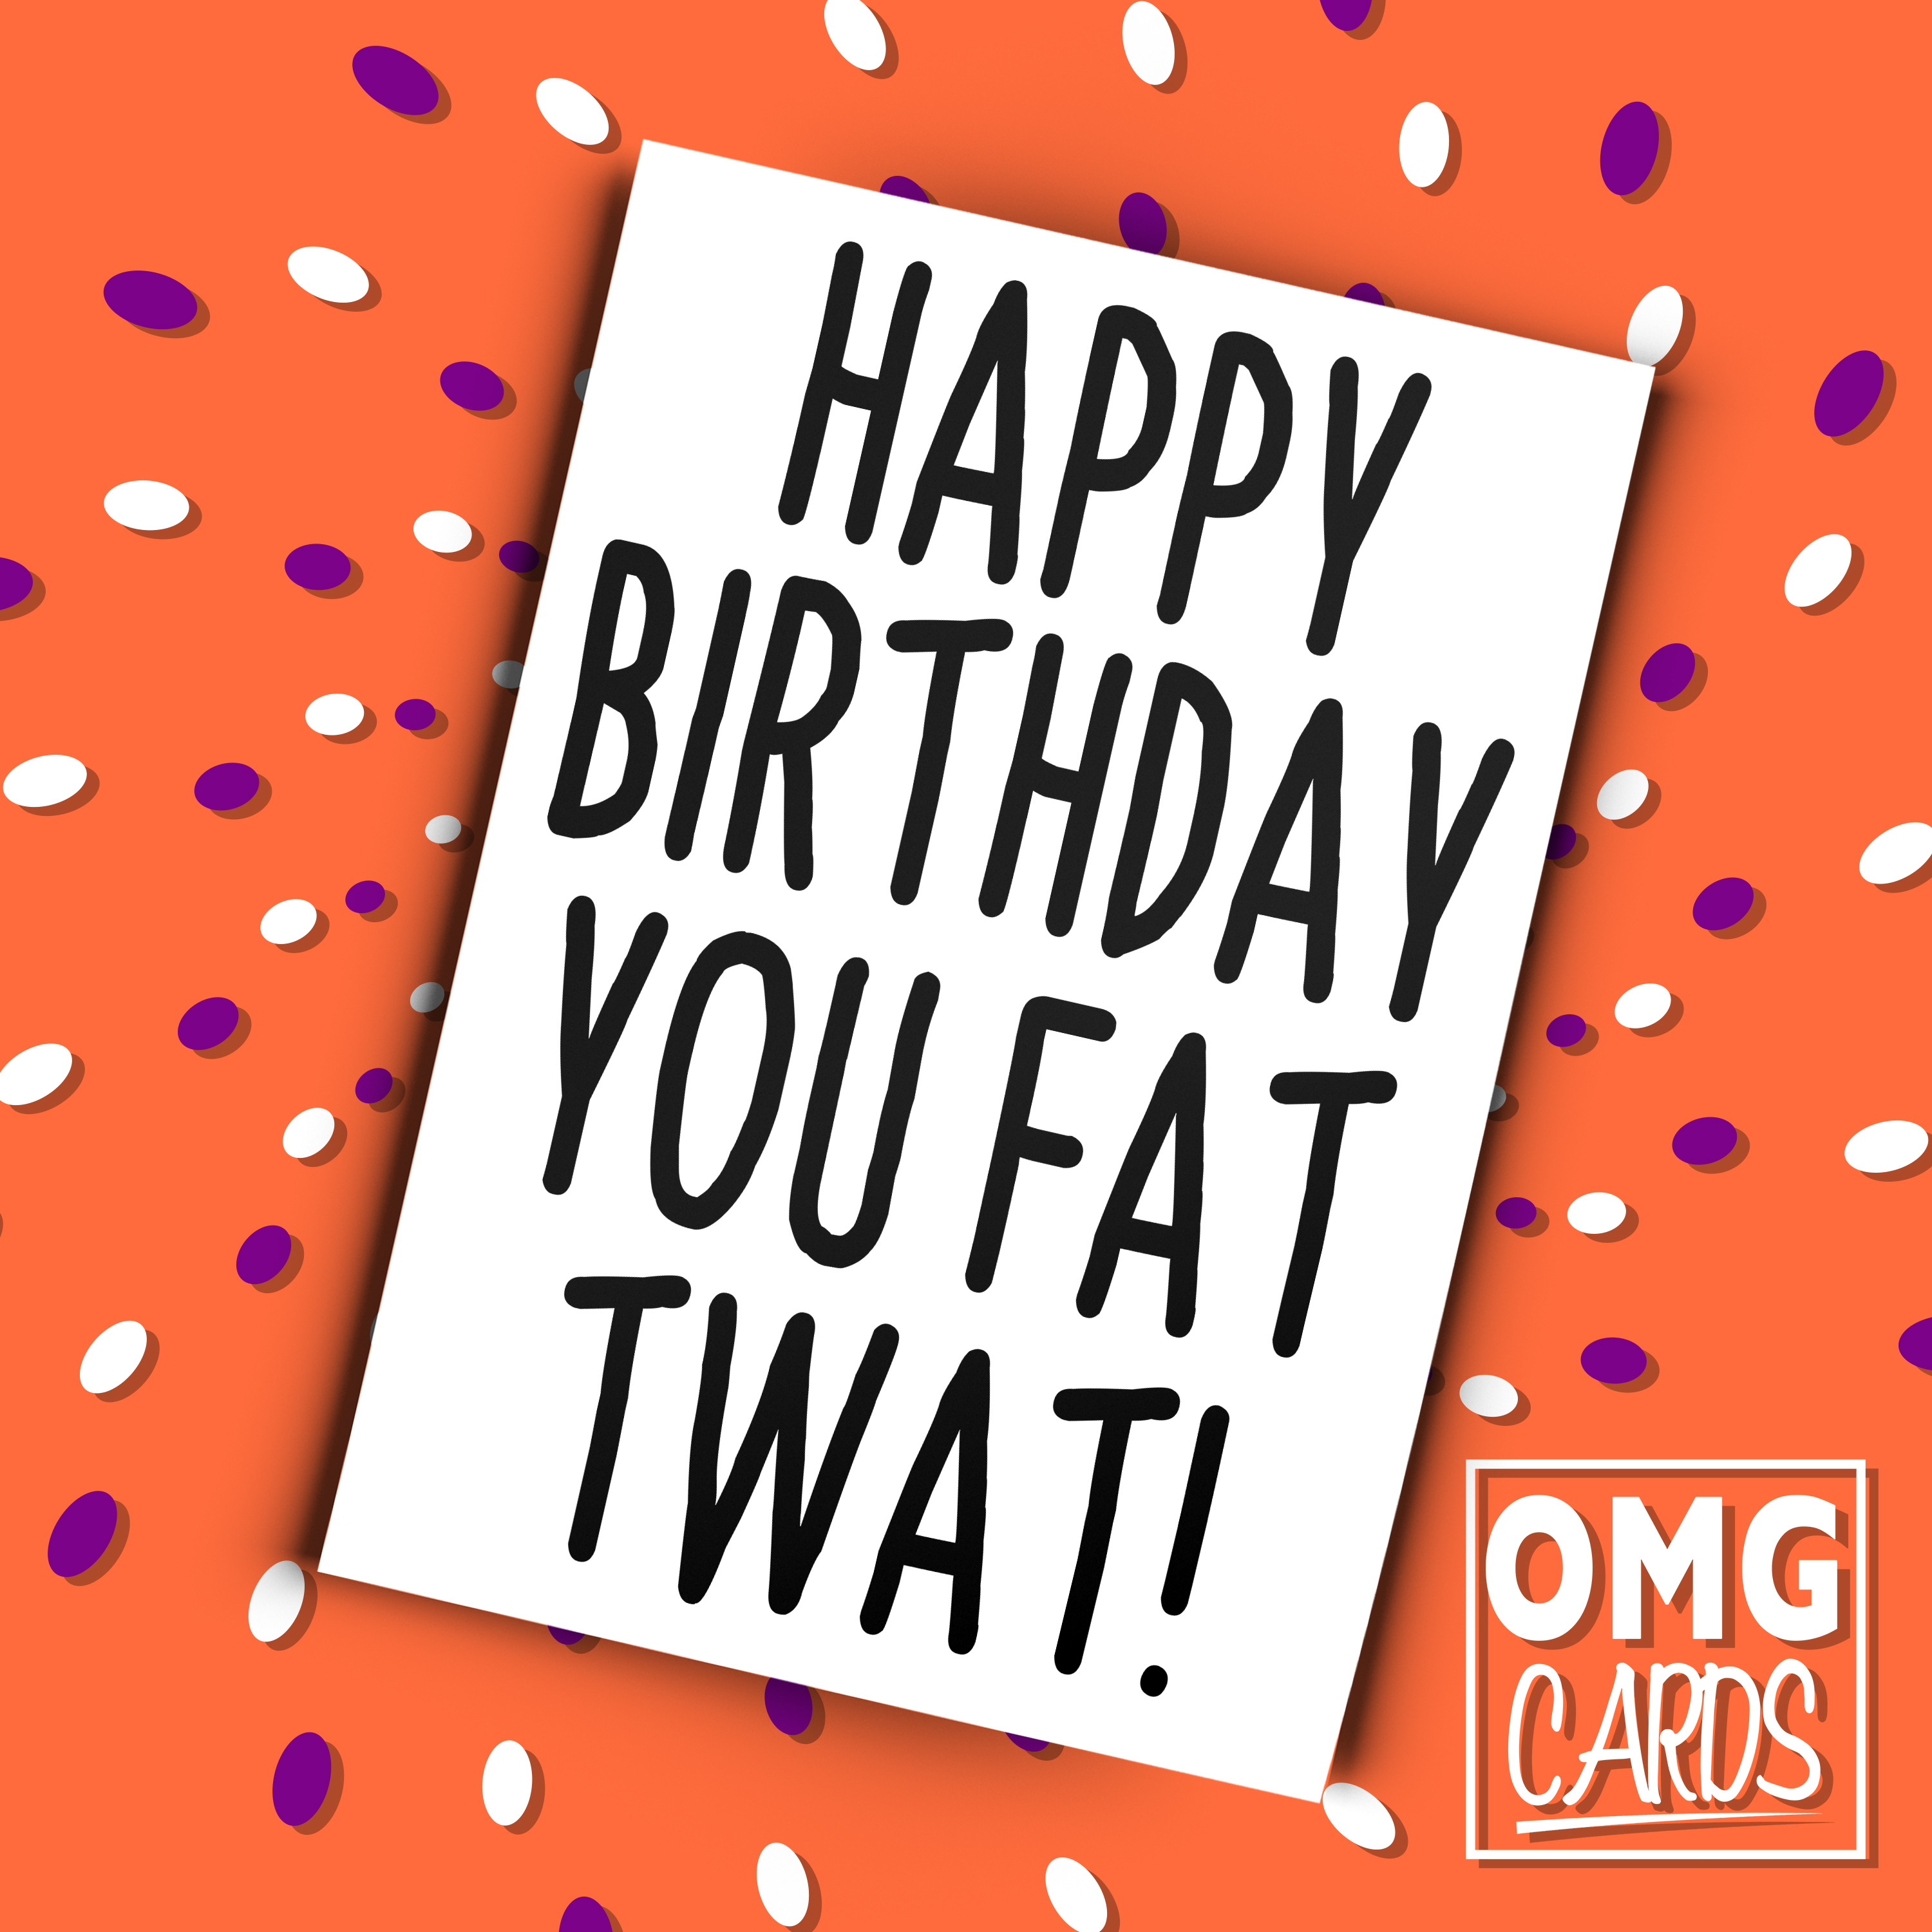 happy birthday fatty ; Happy-Birthday-You-Fat-Twat-Funny-Rude-Birthday-Card